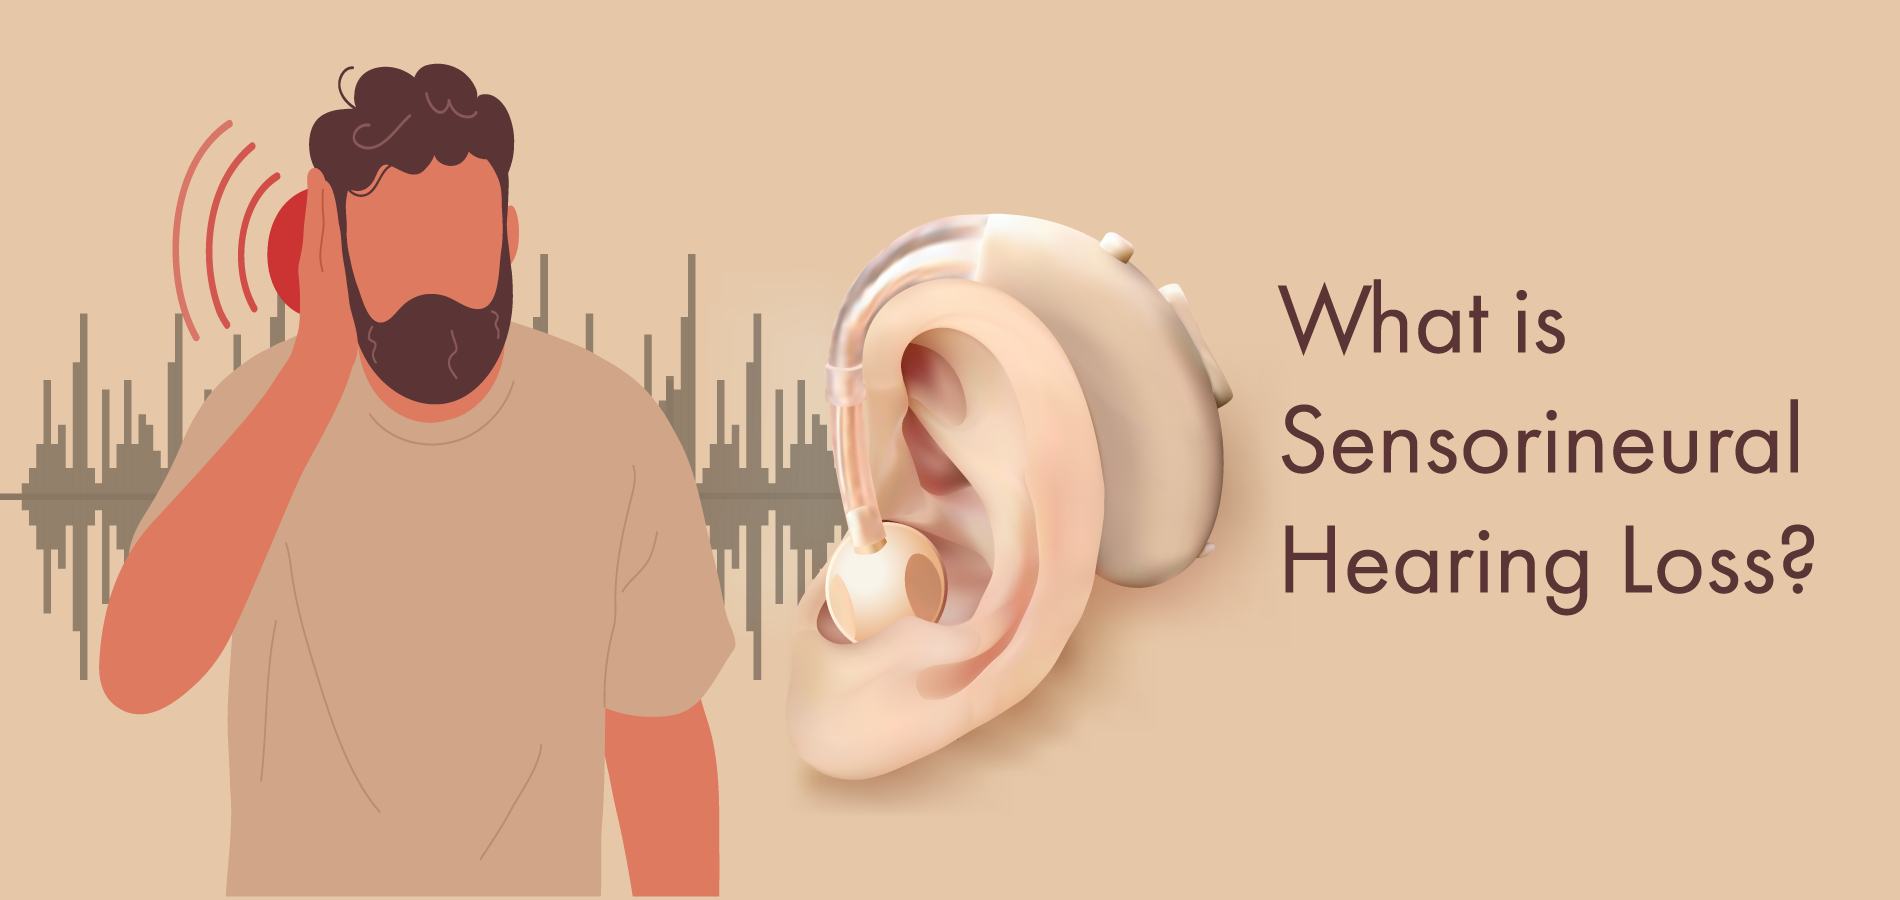 What is sensorineural hearing loss